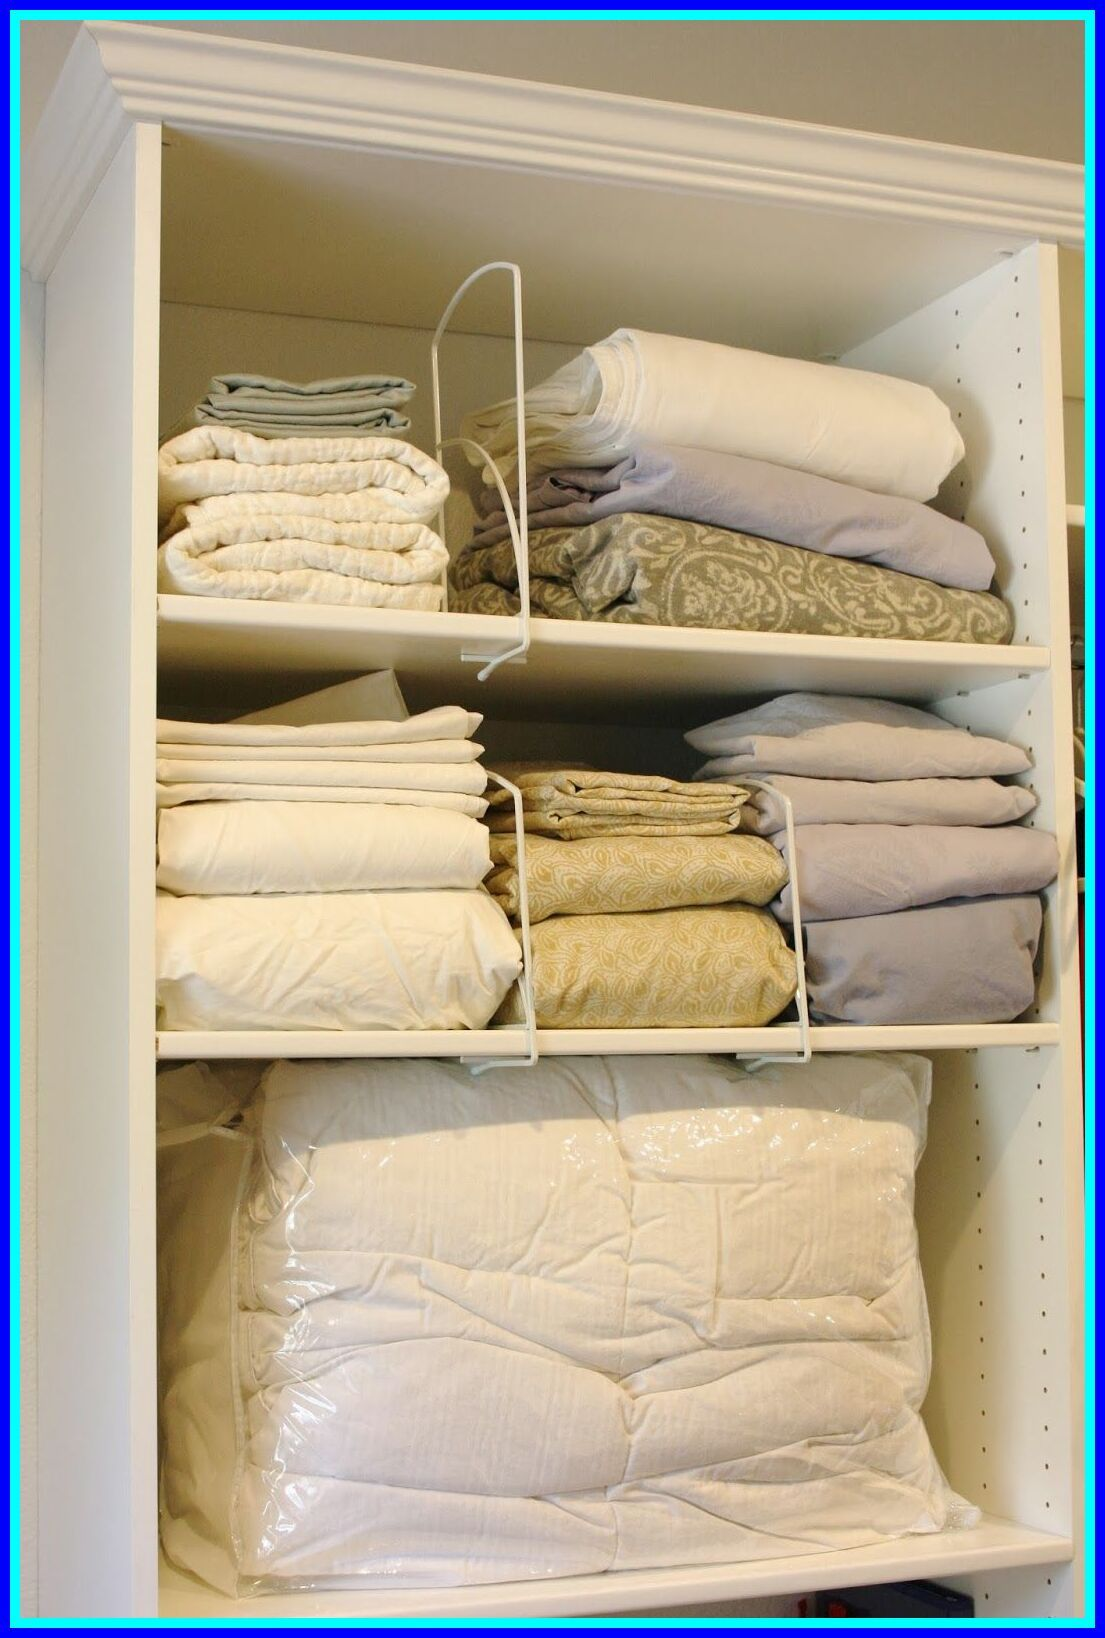 122 Reference Of Sheet Storage Ideas Bed Sheets In 2020 Sheet Storage Organized Bed Small Space Storage